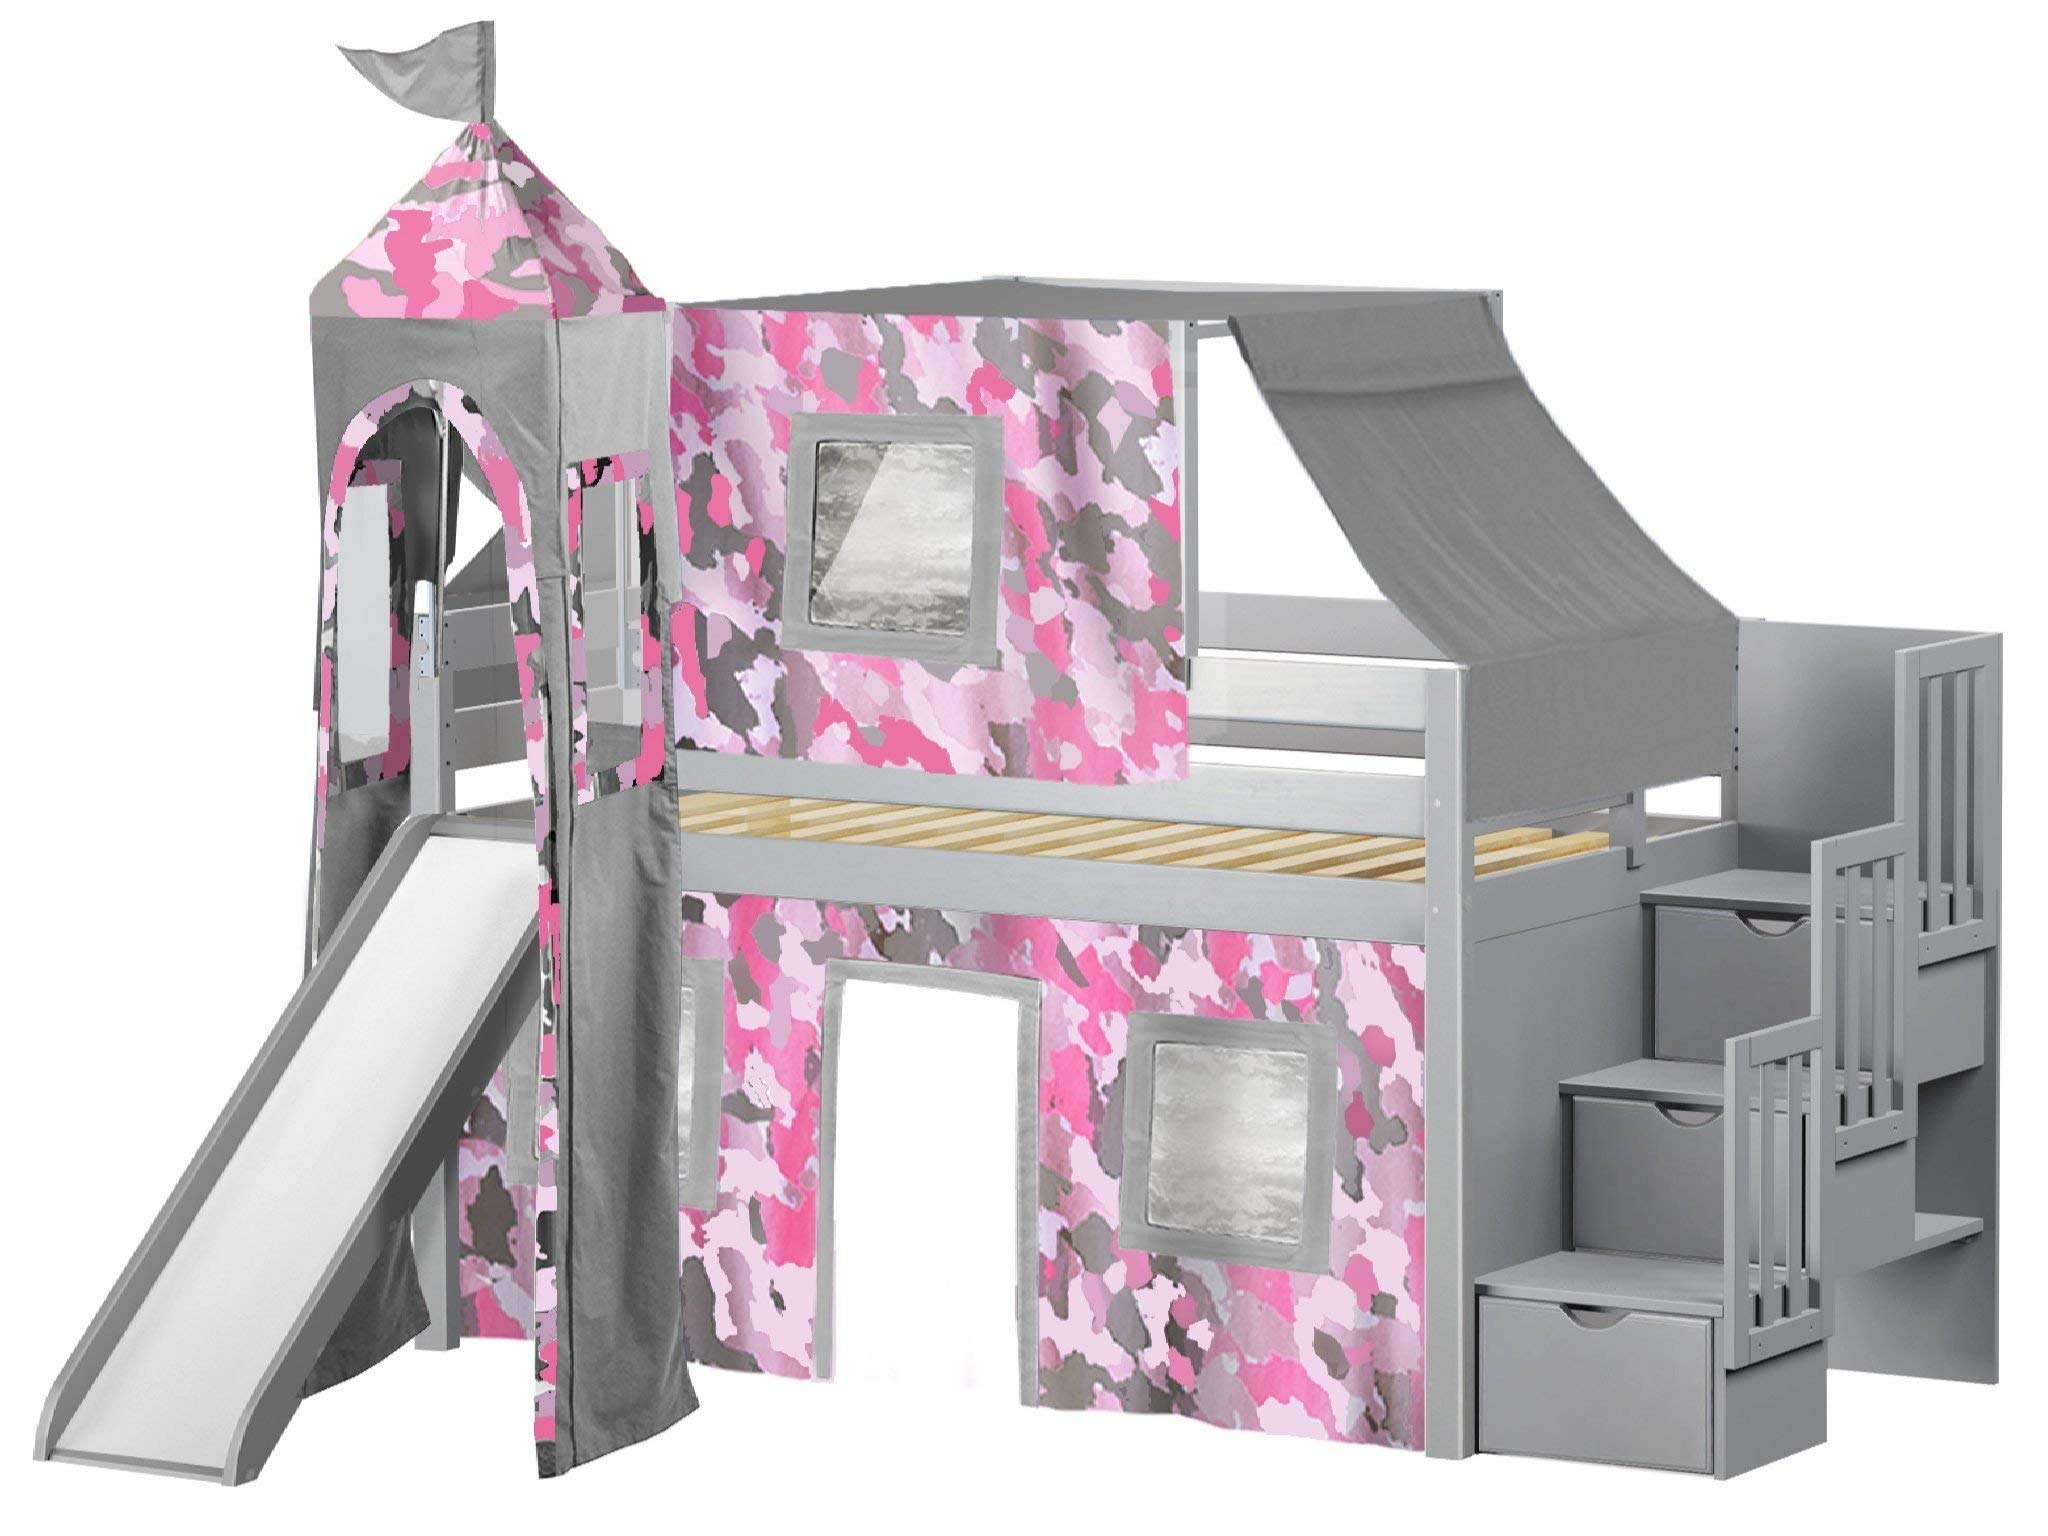 JACKPOT! Princess Low Loft Stairway Bed with Slide Pink Camo Tent and Tower, Loft Bed, Twin, Gray by JACKPOT!